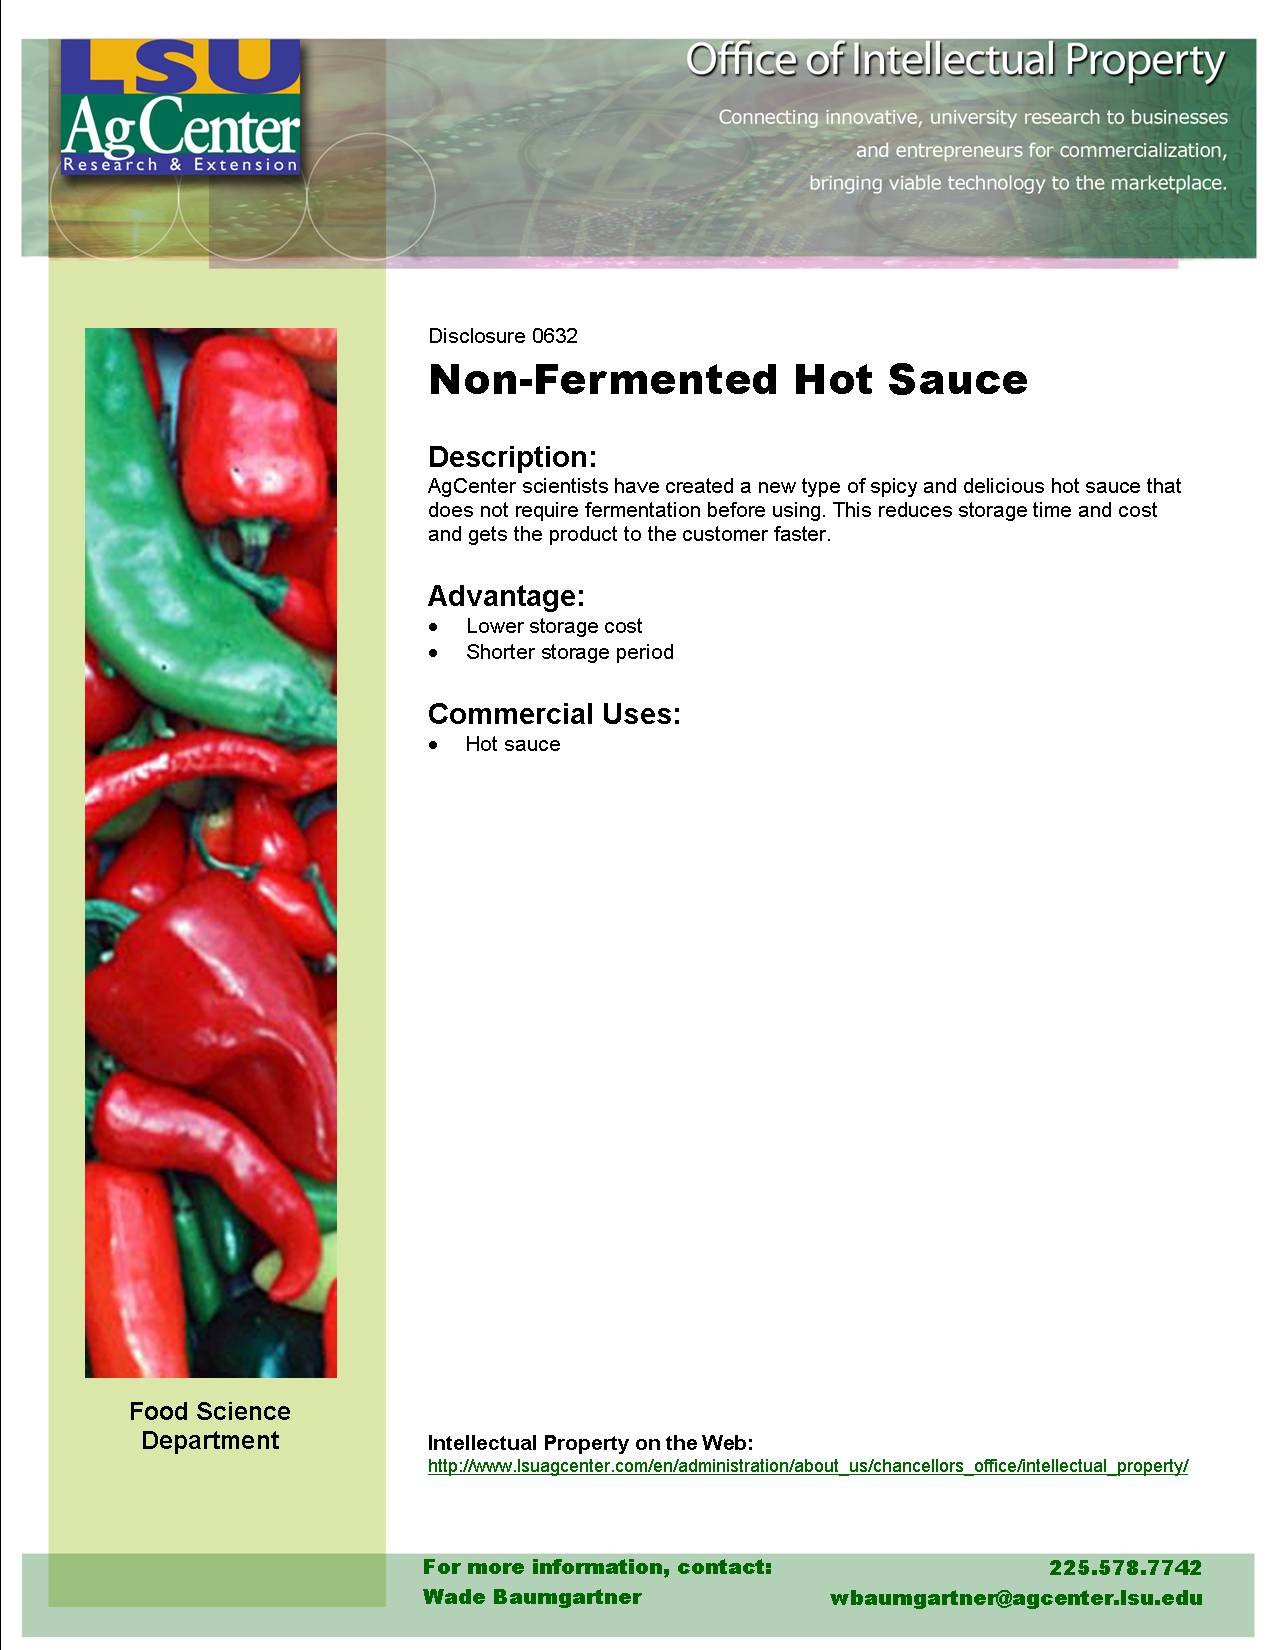 Non-Fermented Hot Sauce